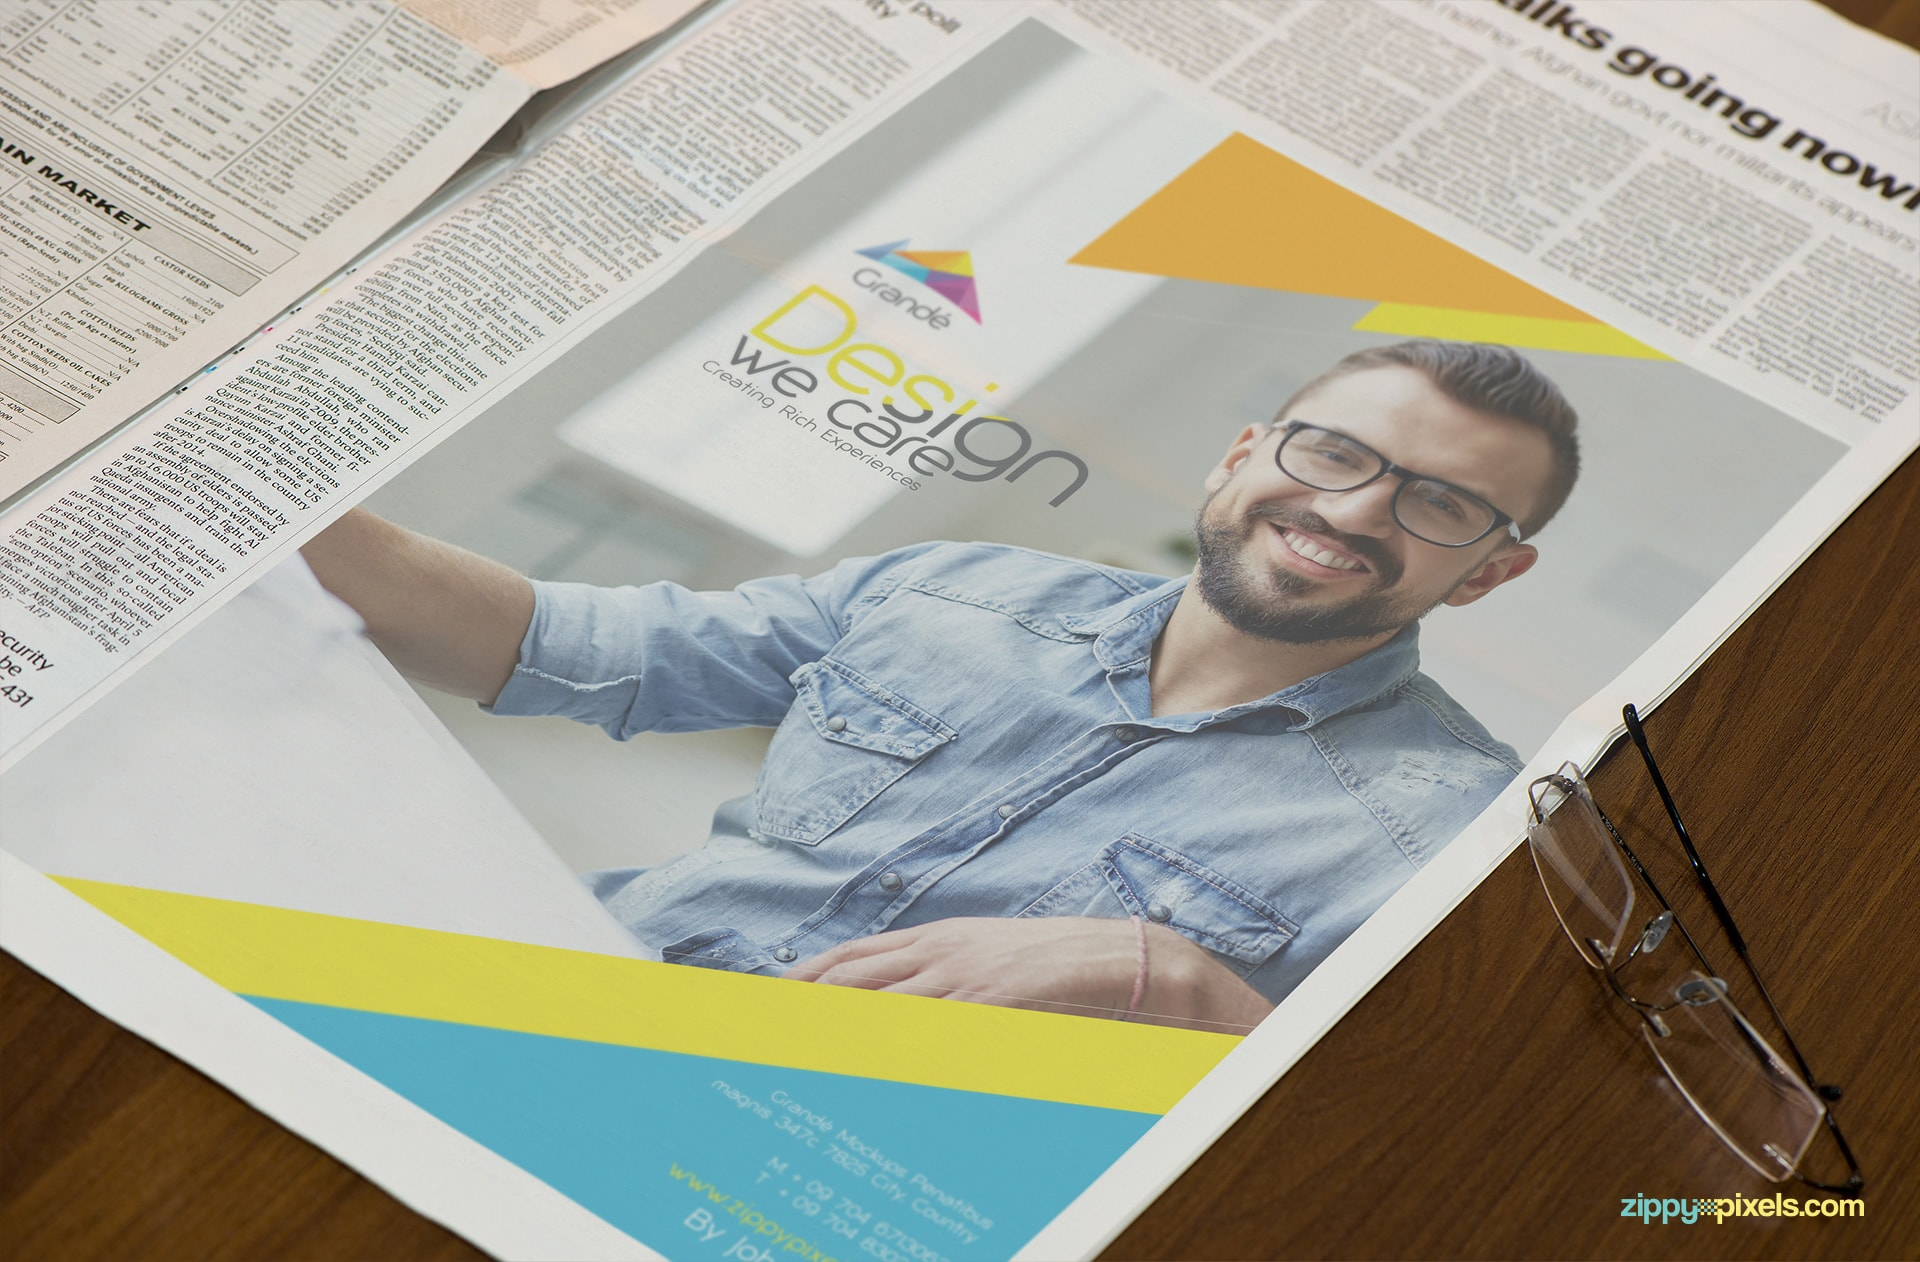 Photorealistic Newspaper Psd Mockups For Advertising | Zippypixels